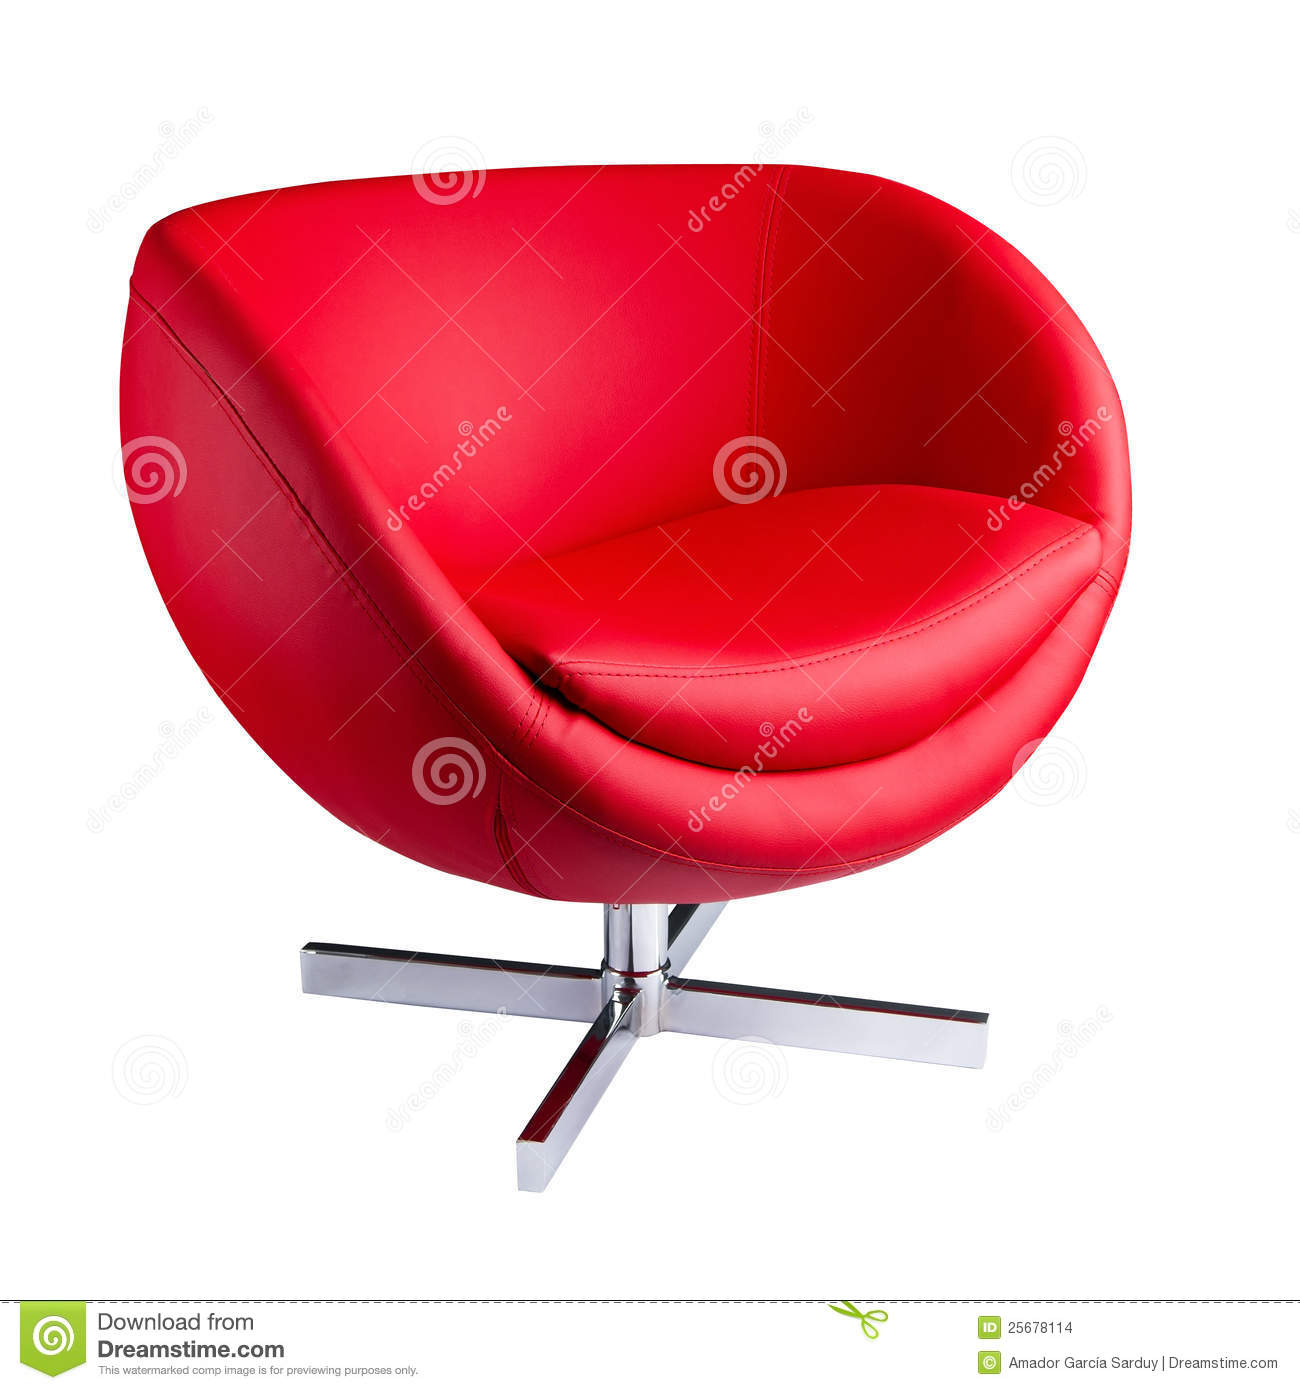 modern red chair stock images  image  - modern red chair stock images